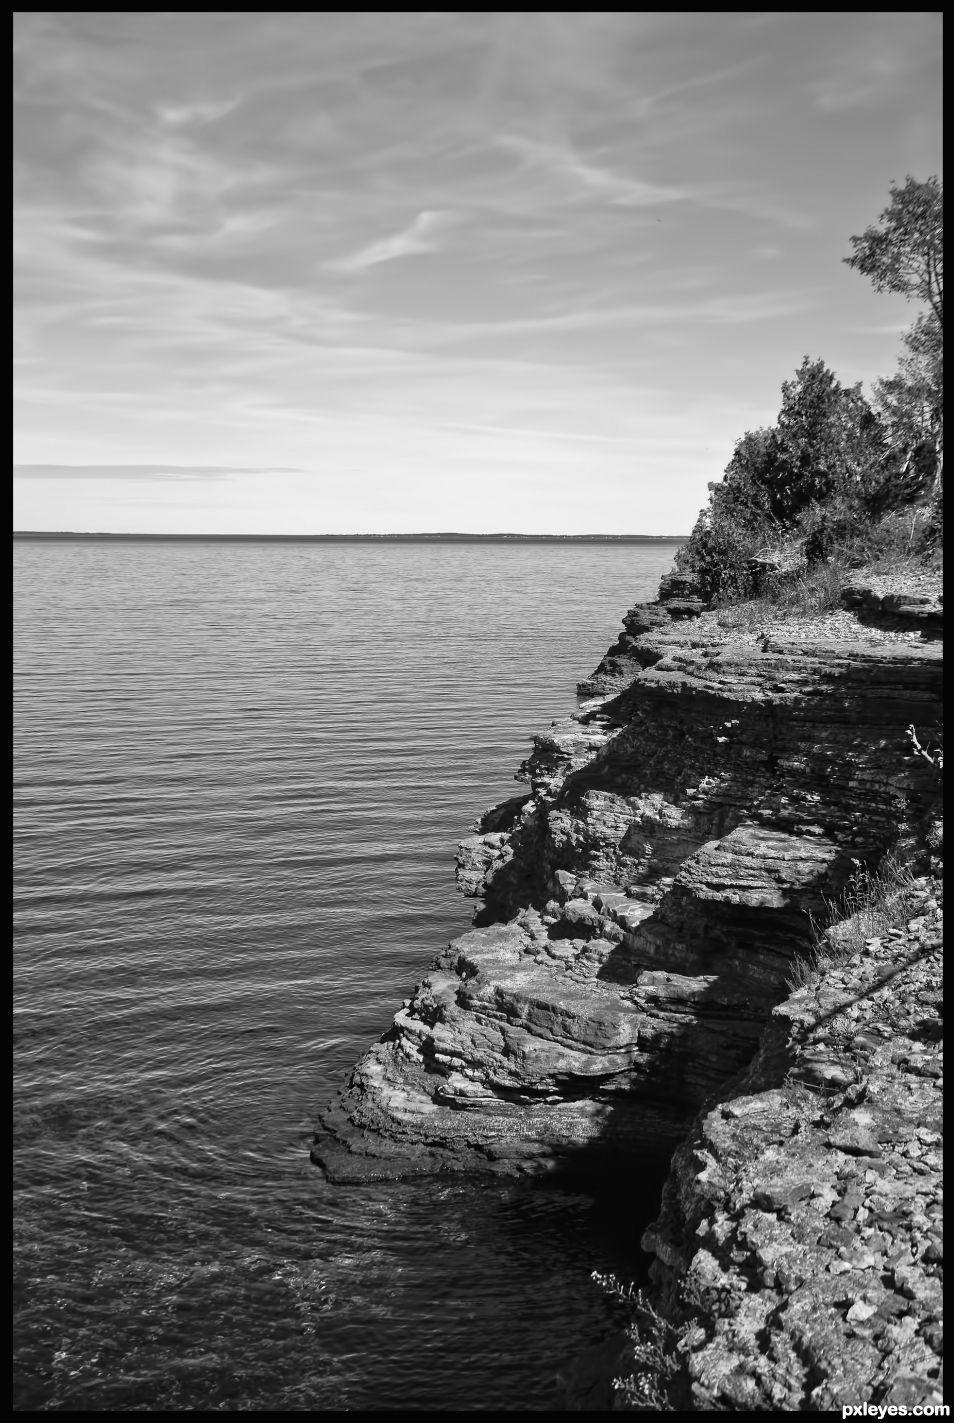 The Shore of Lake Ontario